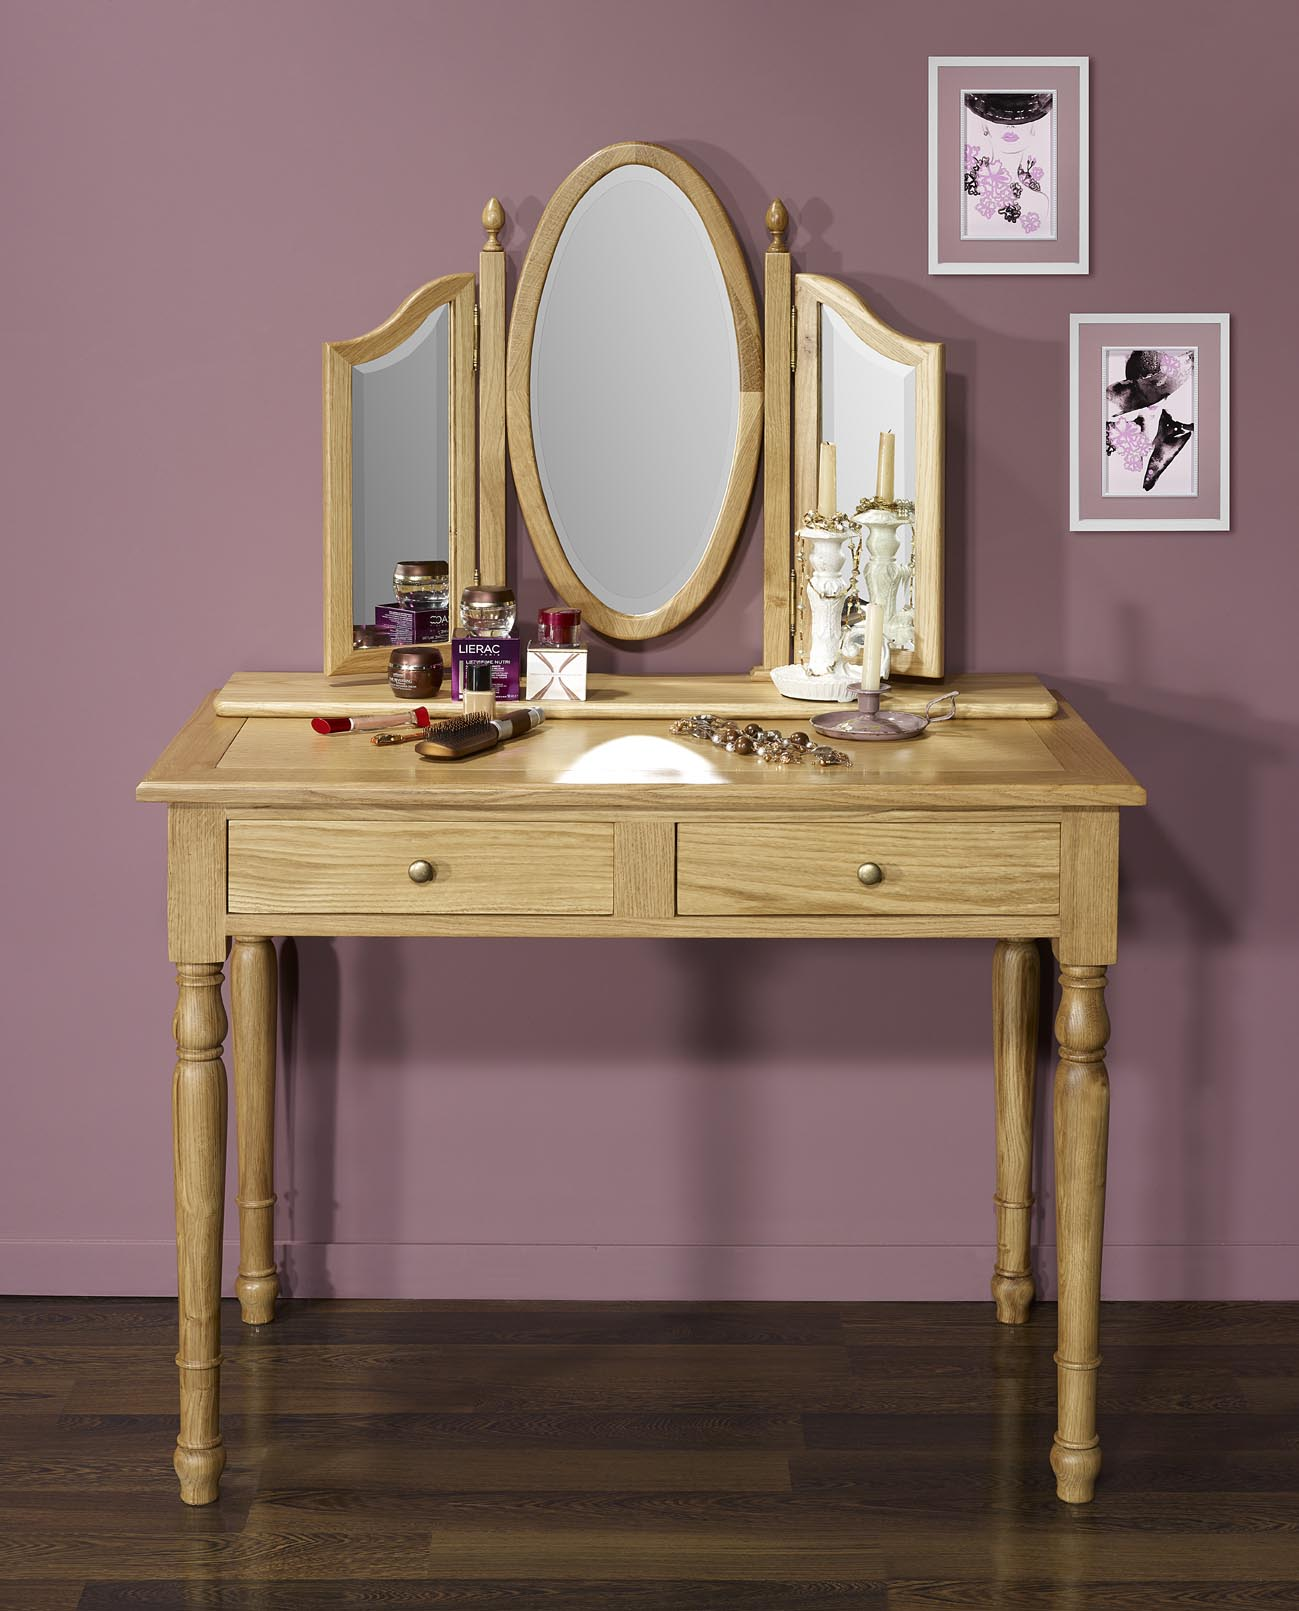 Table de toilette ou coiffeuse val rie en ch ne de style for Coiffeuse meuble